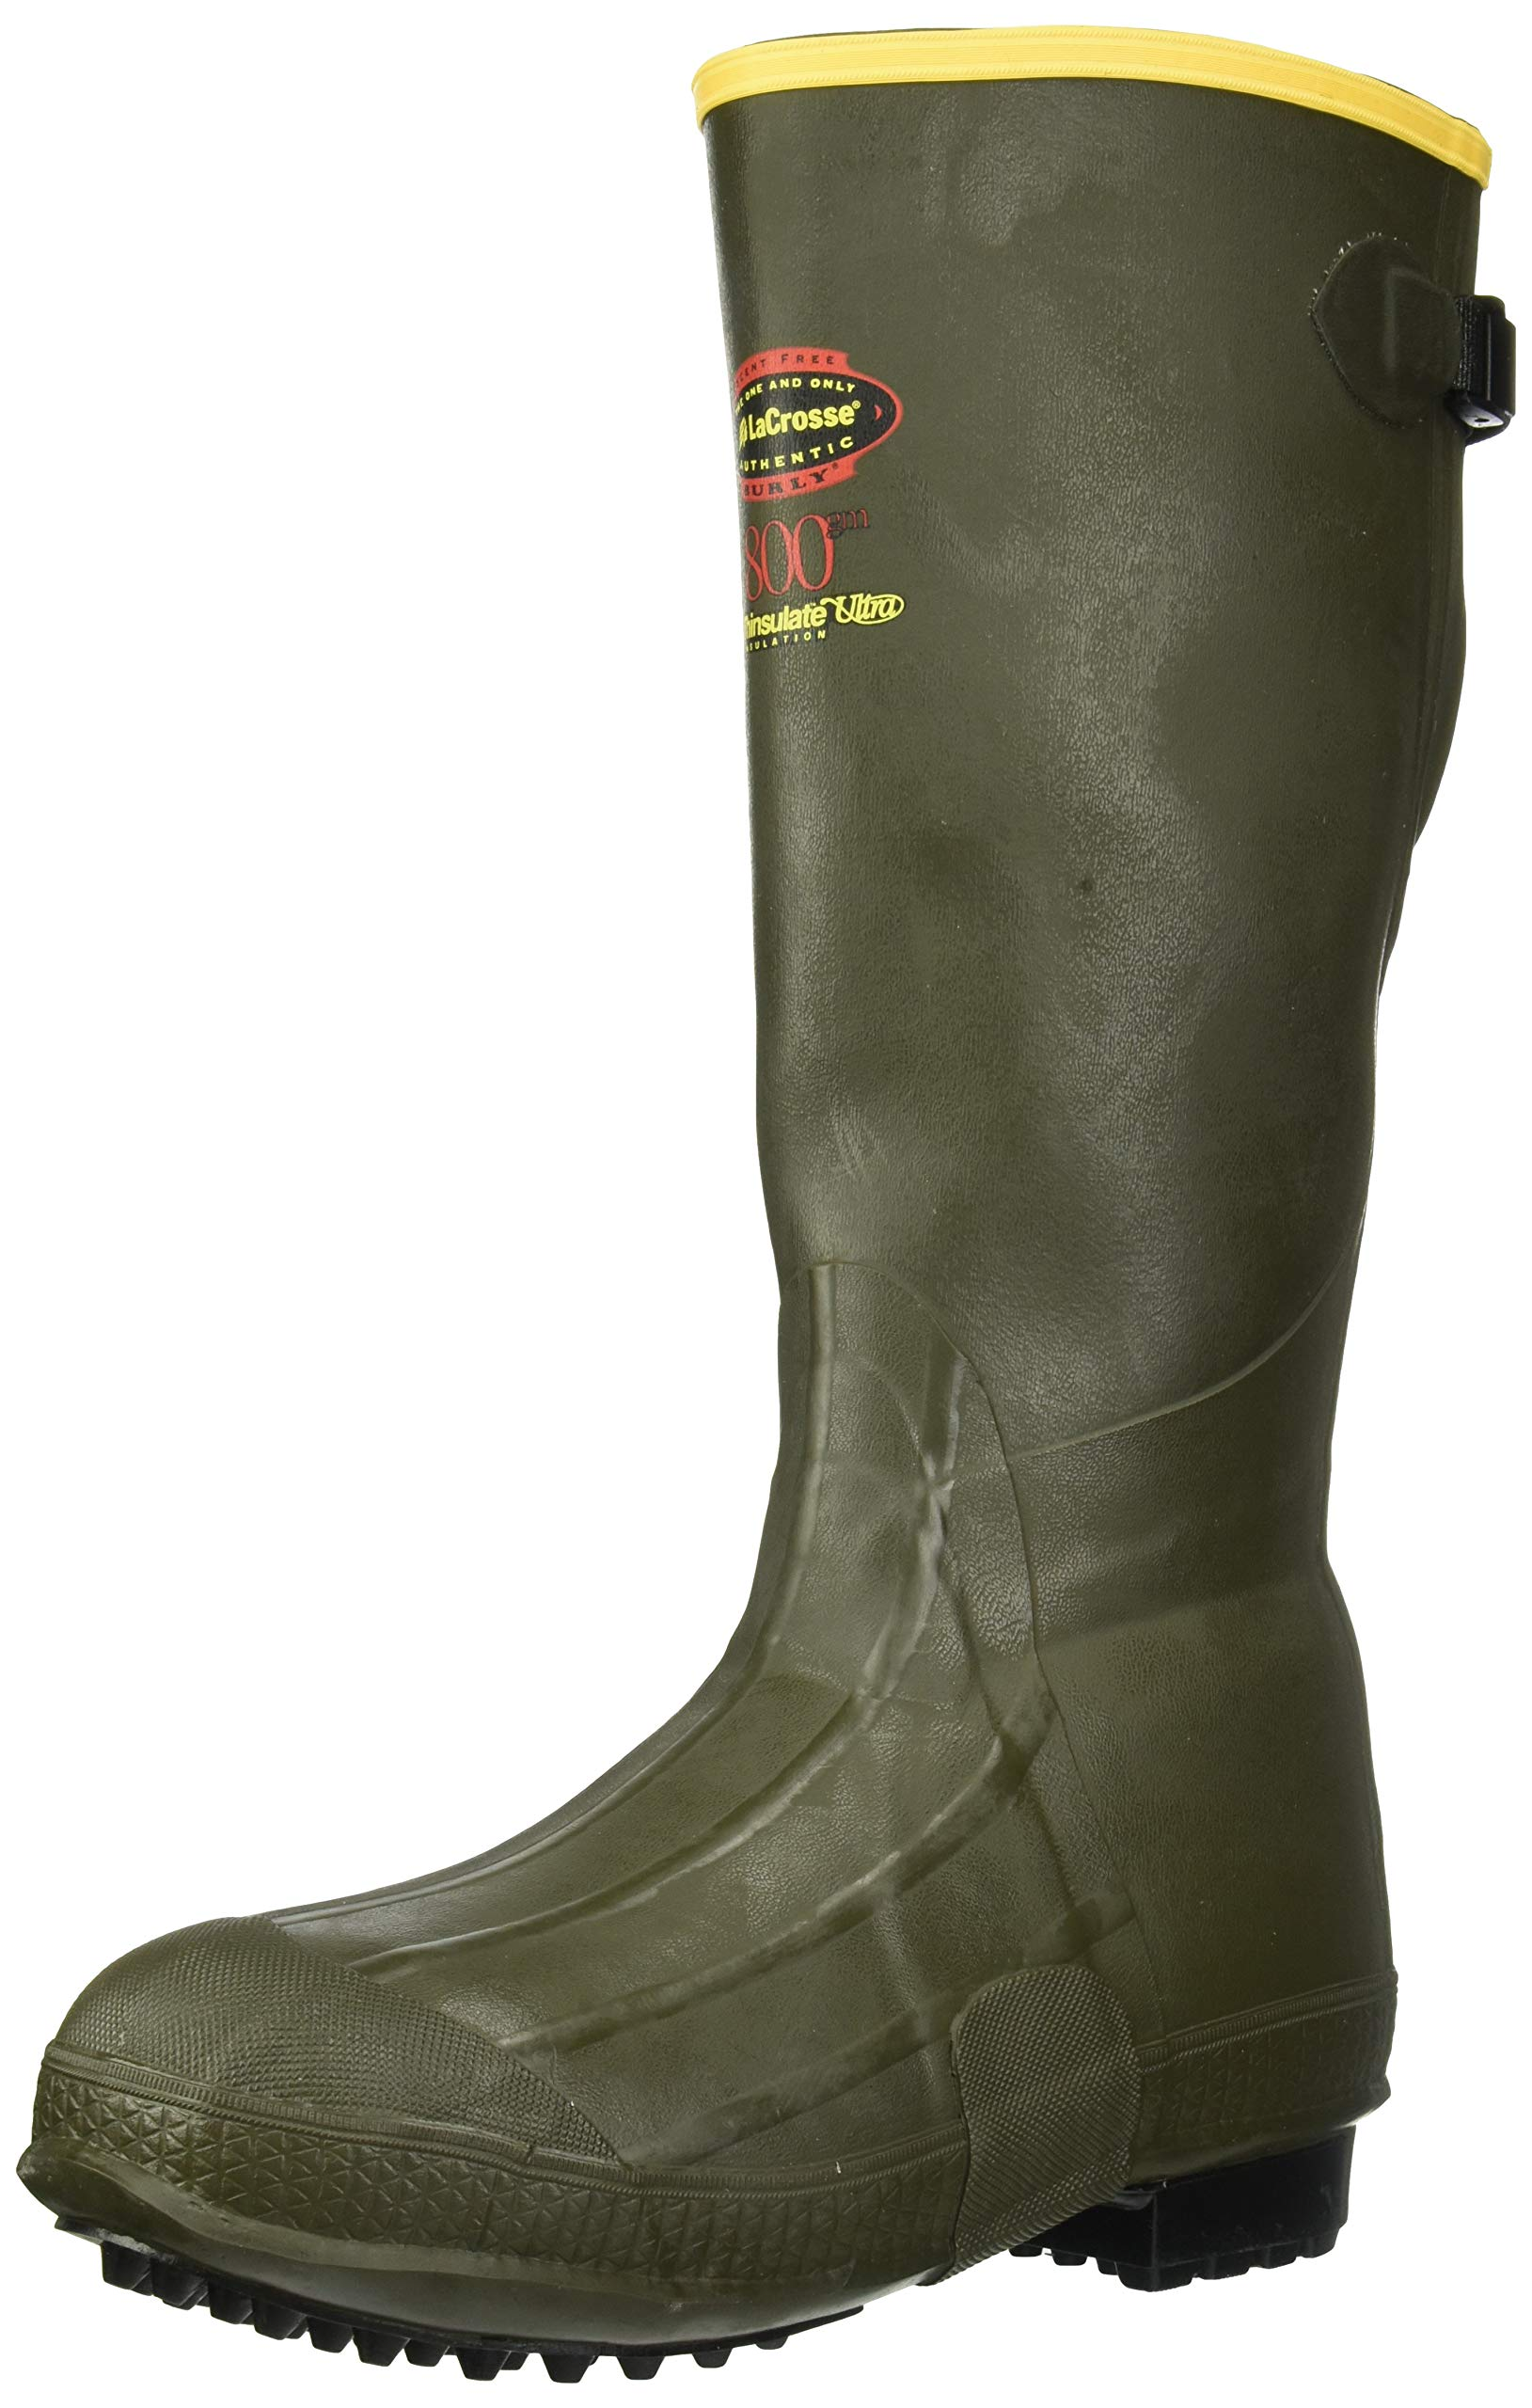 Lacrosse Men's Burly Air Grip 800G-M, Forest Green, 12 M US by Unknown